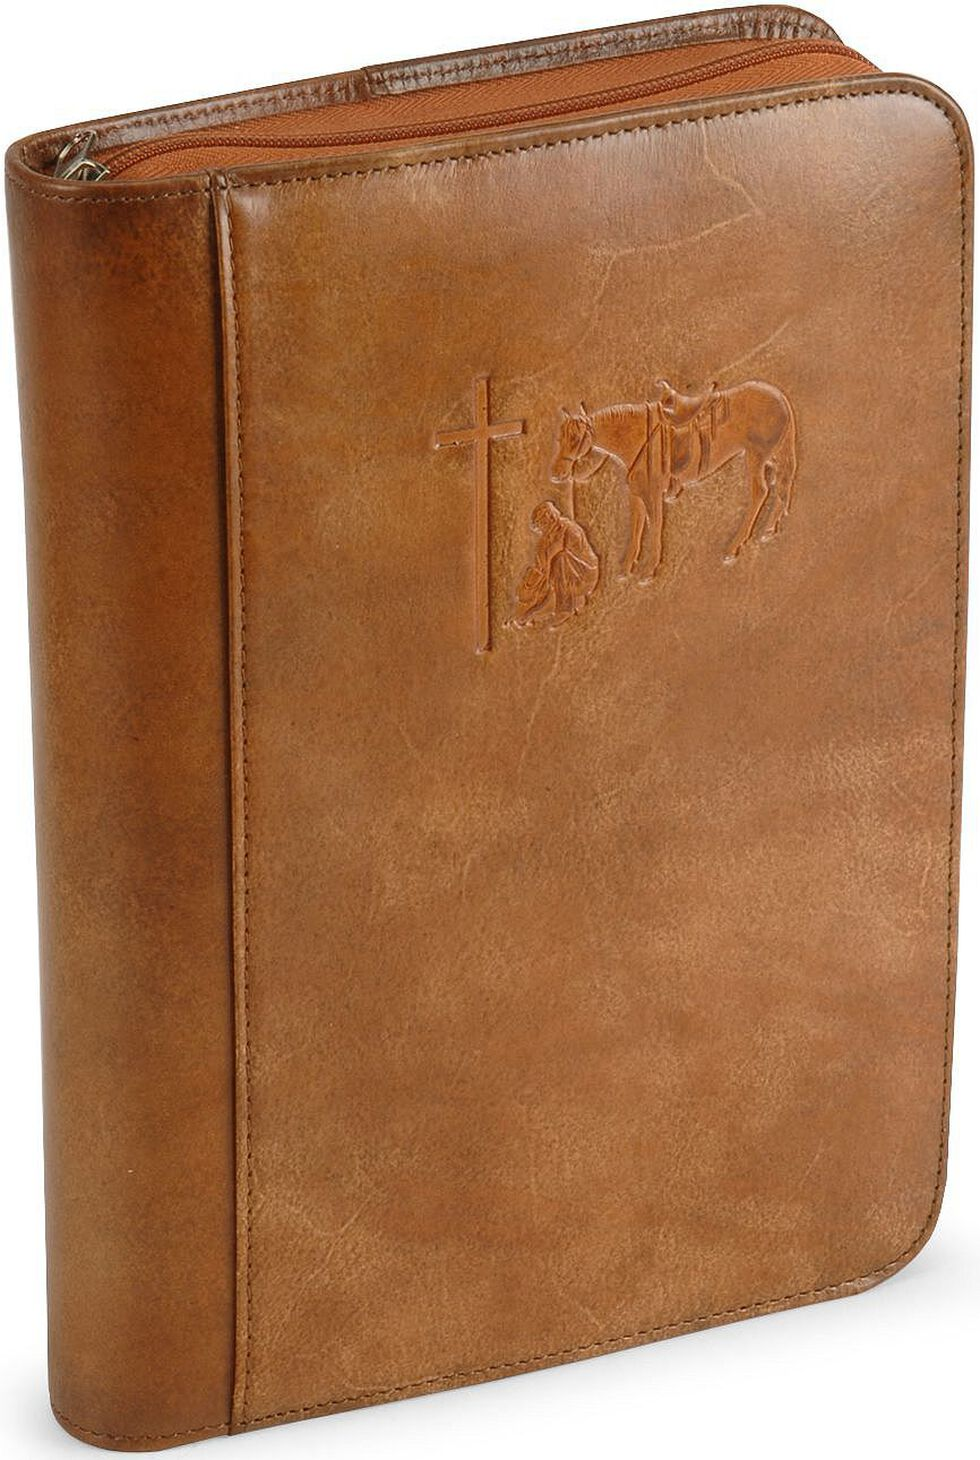 Cowboy Prayer Leather Bible Cover, Brown, hi-res